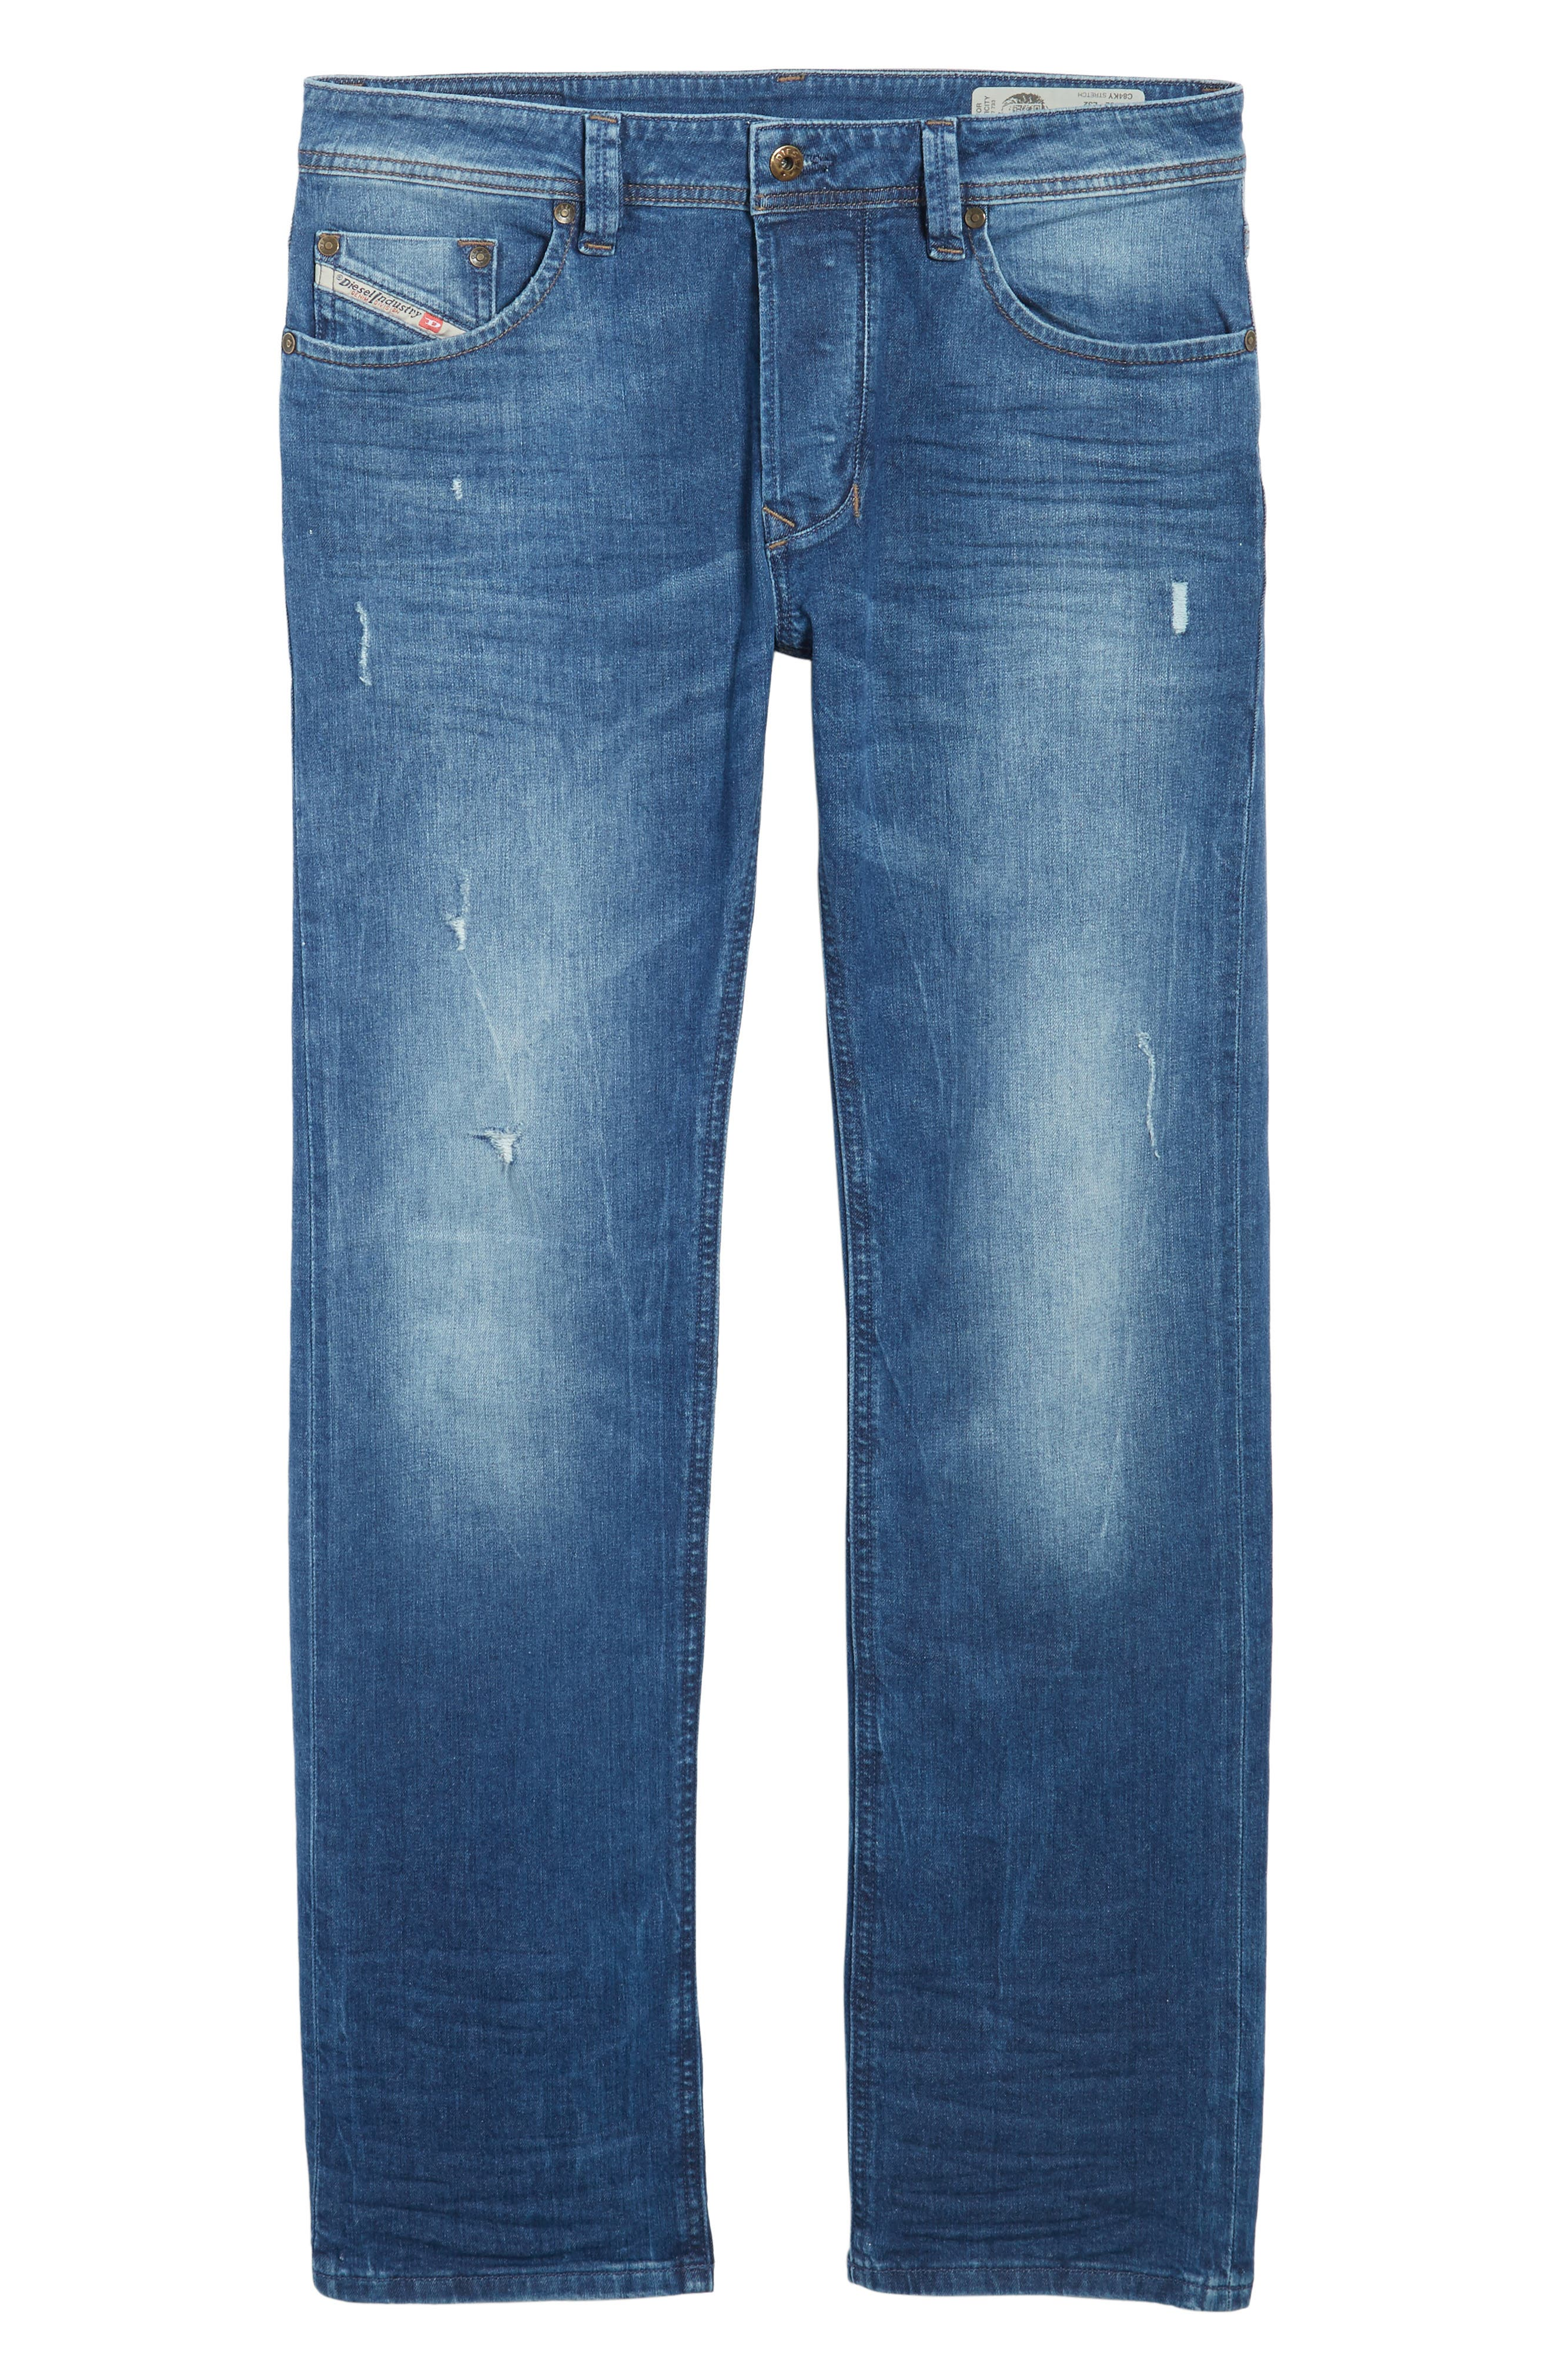 Larkee Relaxed Fit Jeans,                             Alternate thumbnail 6, color,                             C84ky